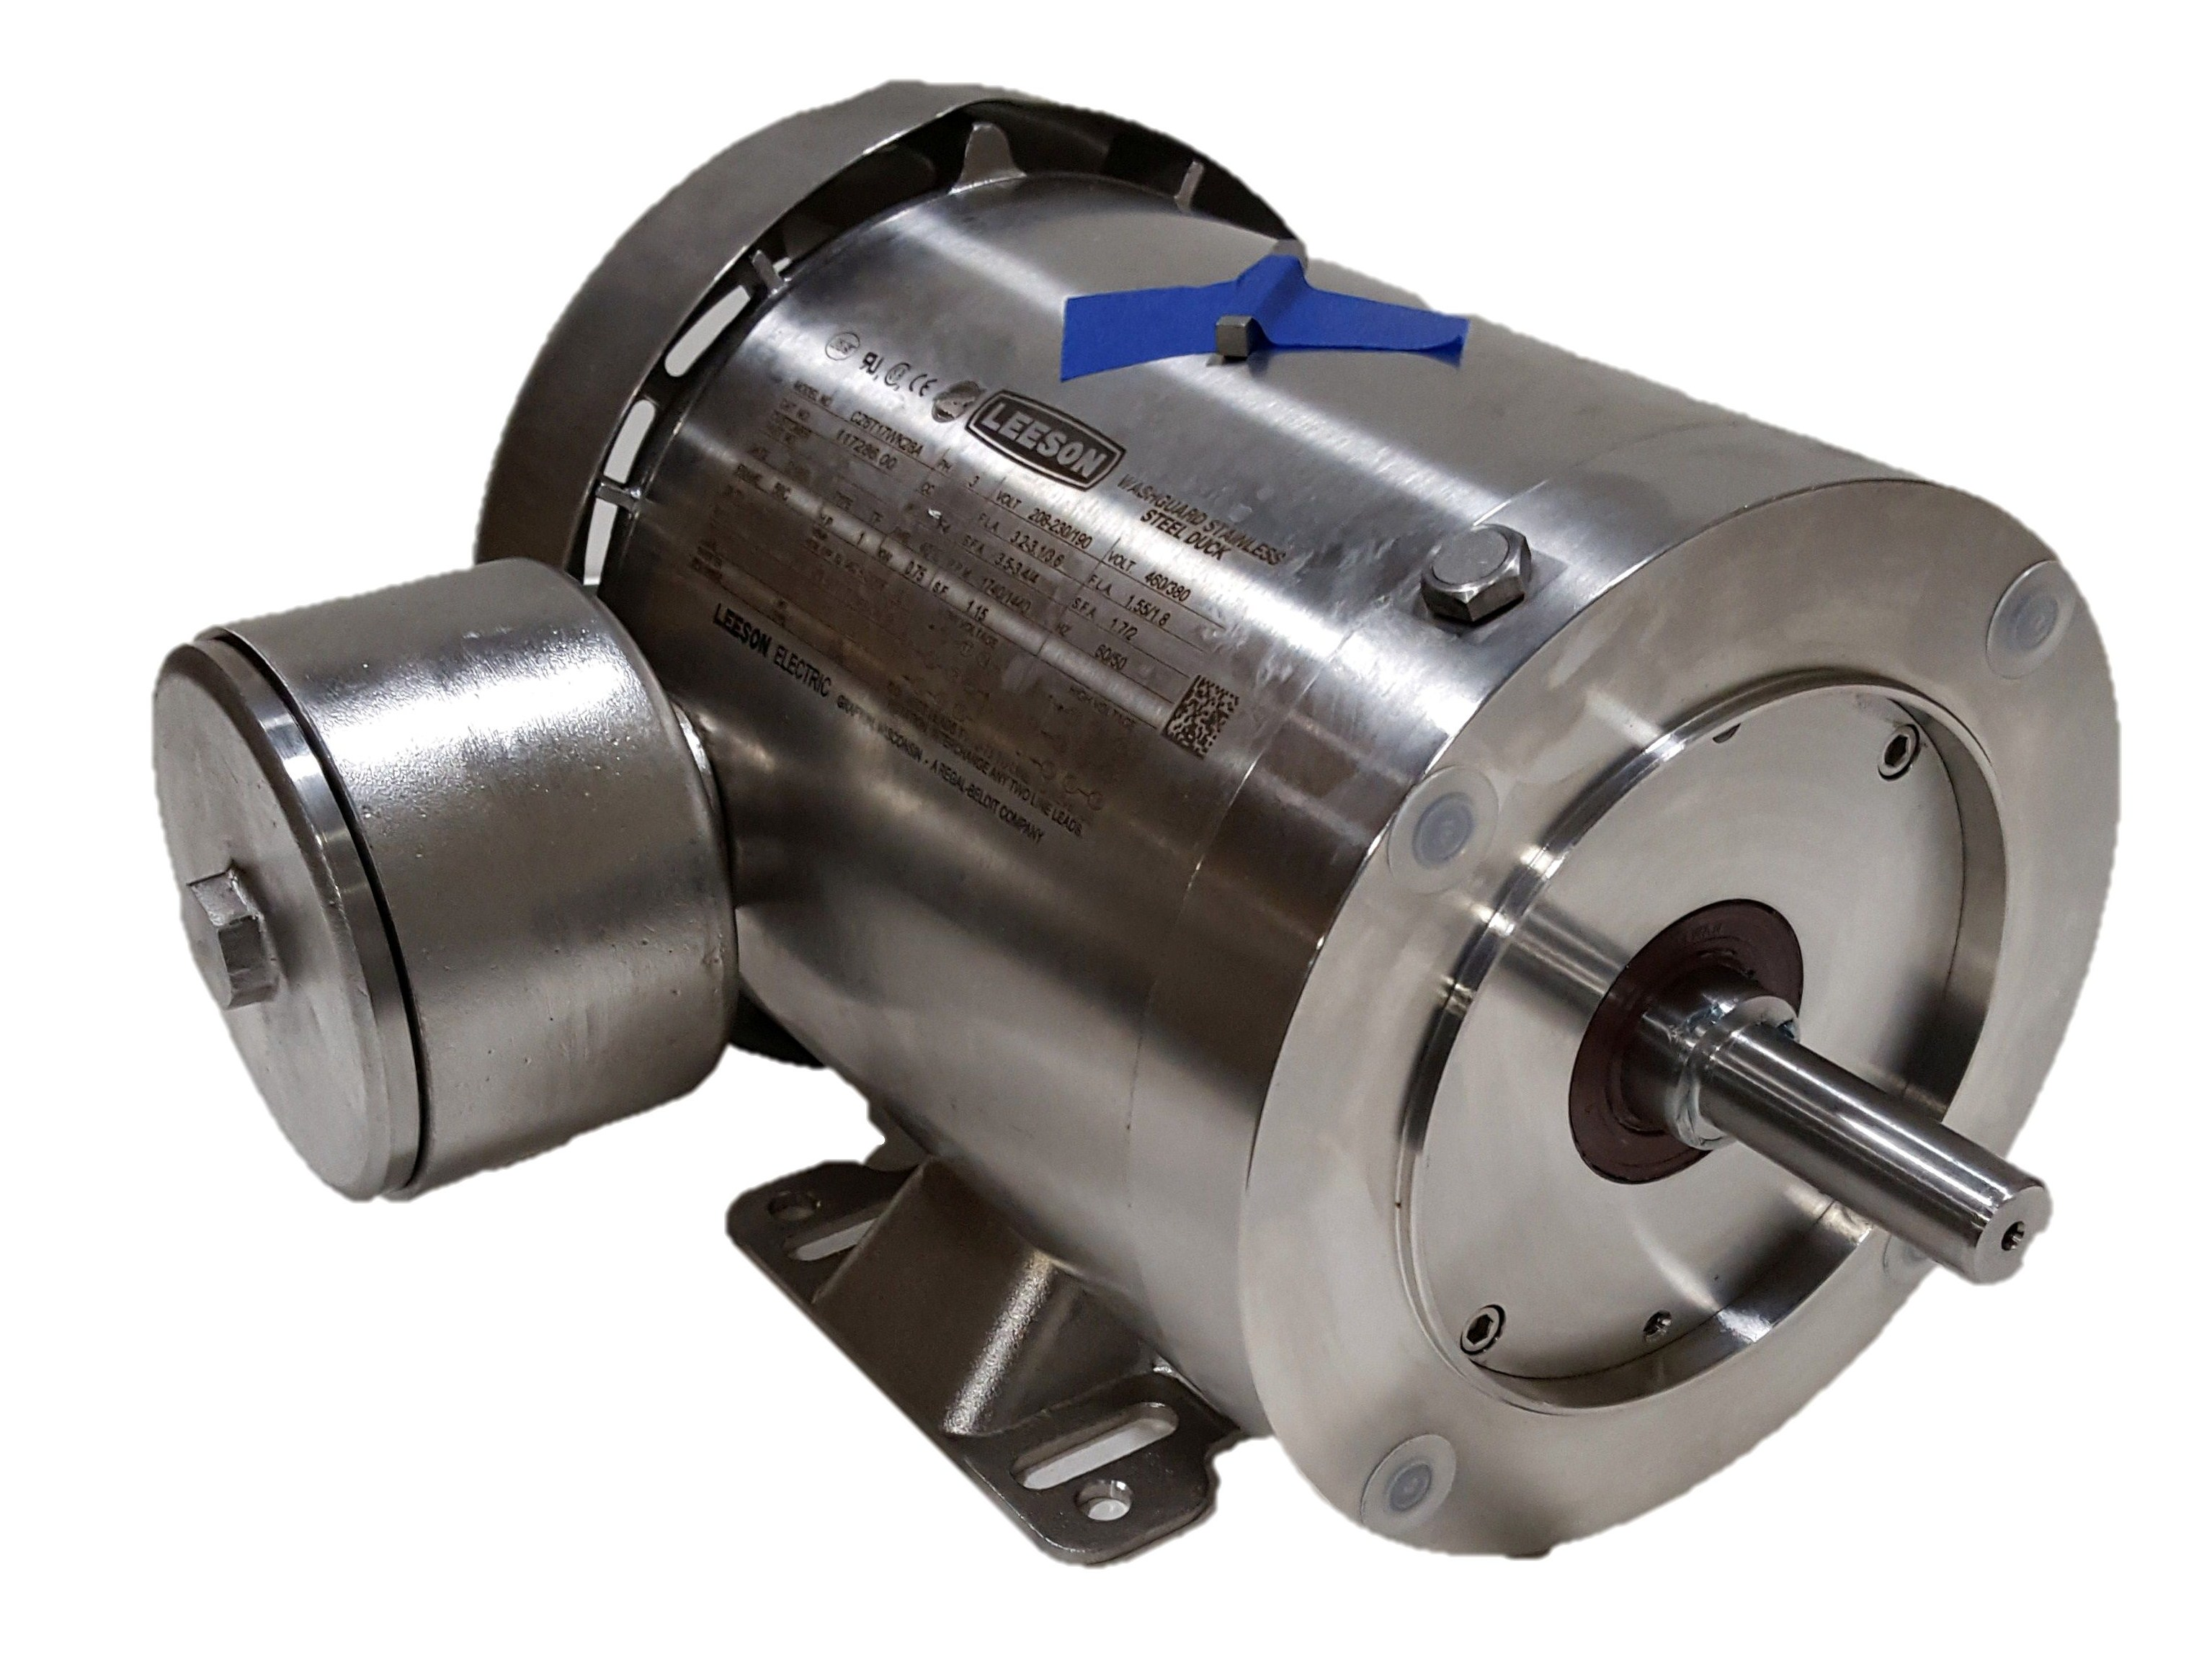 Teco westinghouse 1 hp 1800 rpm 115 volts input stainless for Teco westinghouse motor catalog